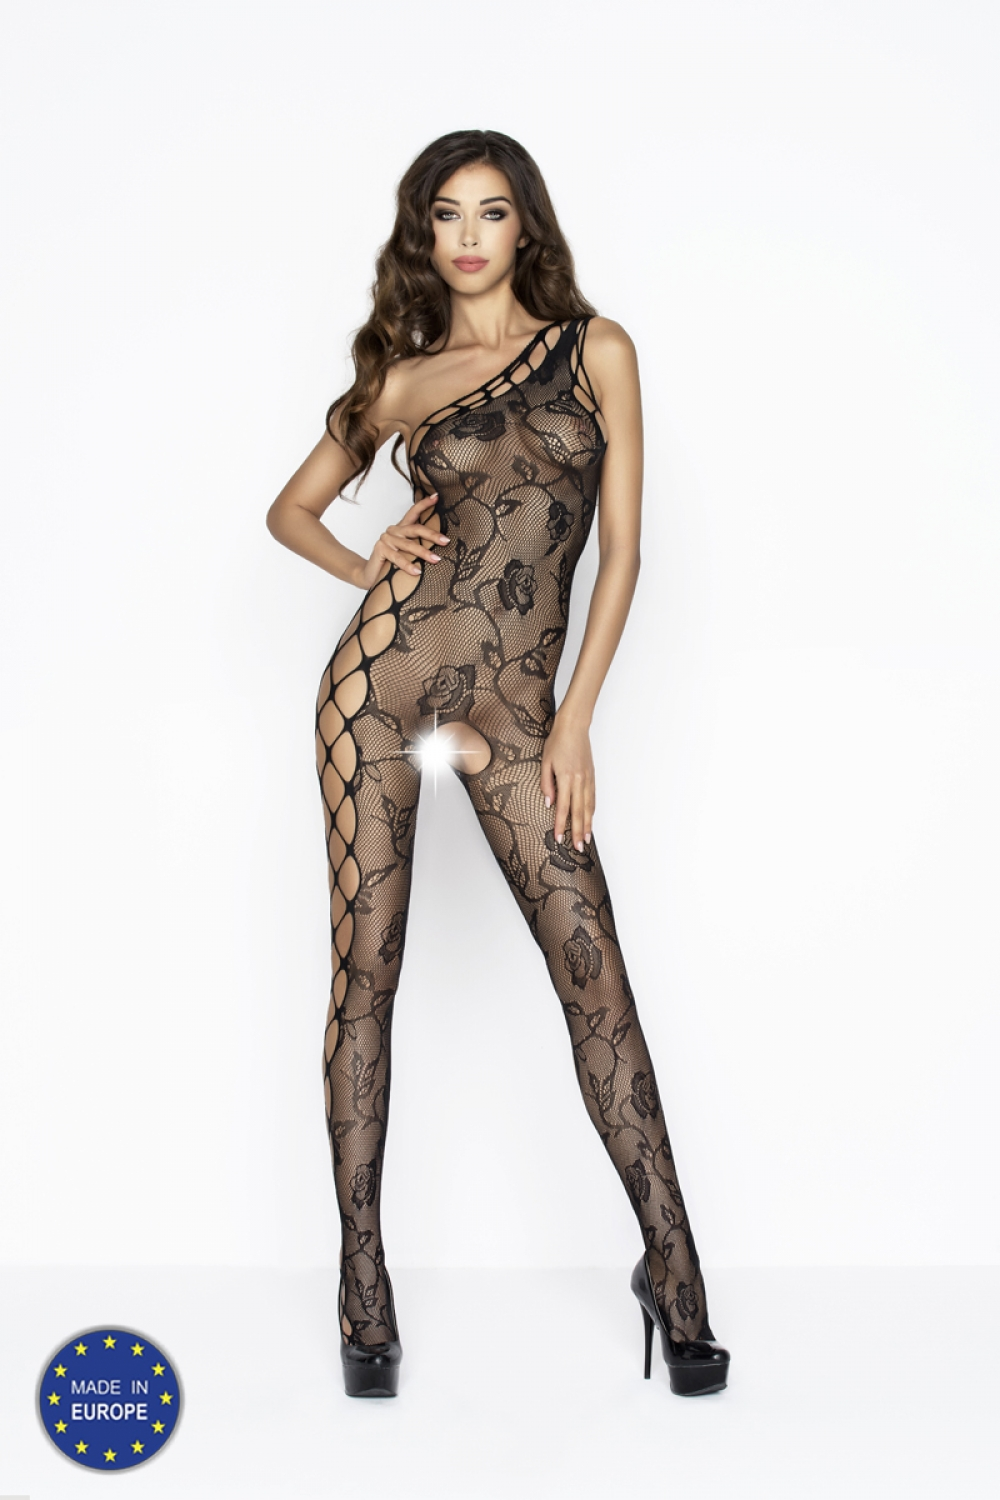 3dab1aa102 Damsky bodystocking passion bs043 cerny